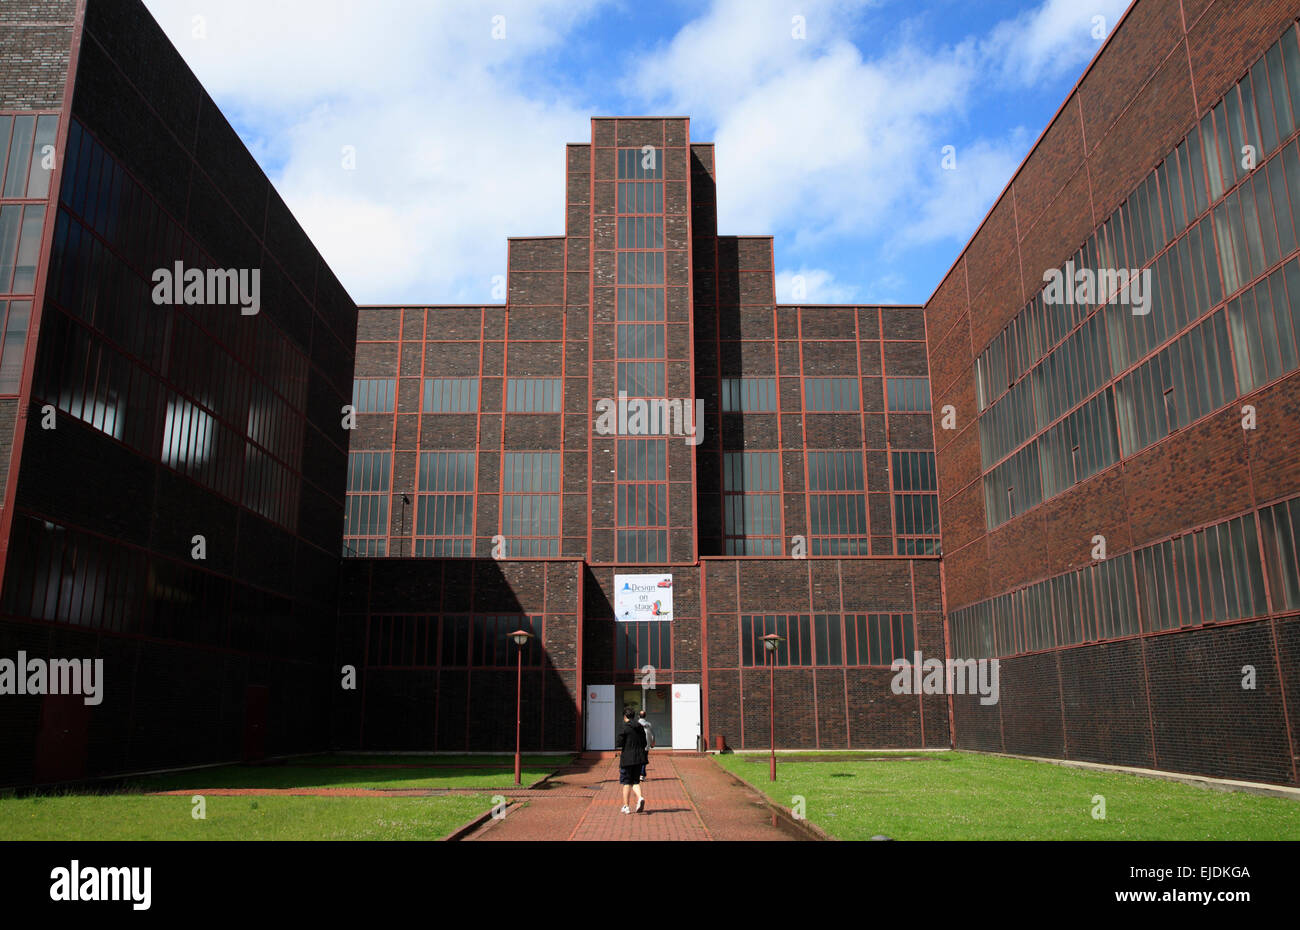 Zeche Zollverein, red dot design museum,  Essen, Nordrhine Westphalia, Germany, Europe - Stock Image